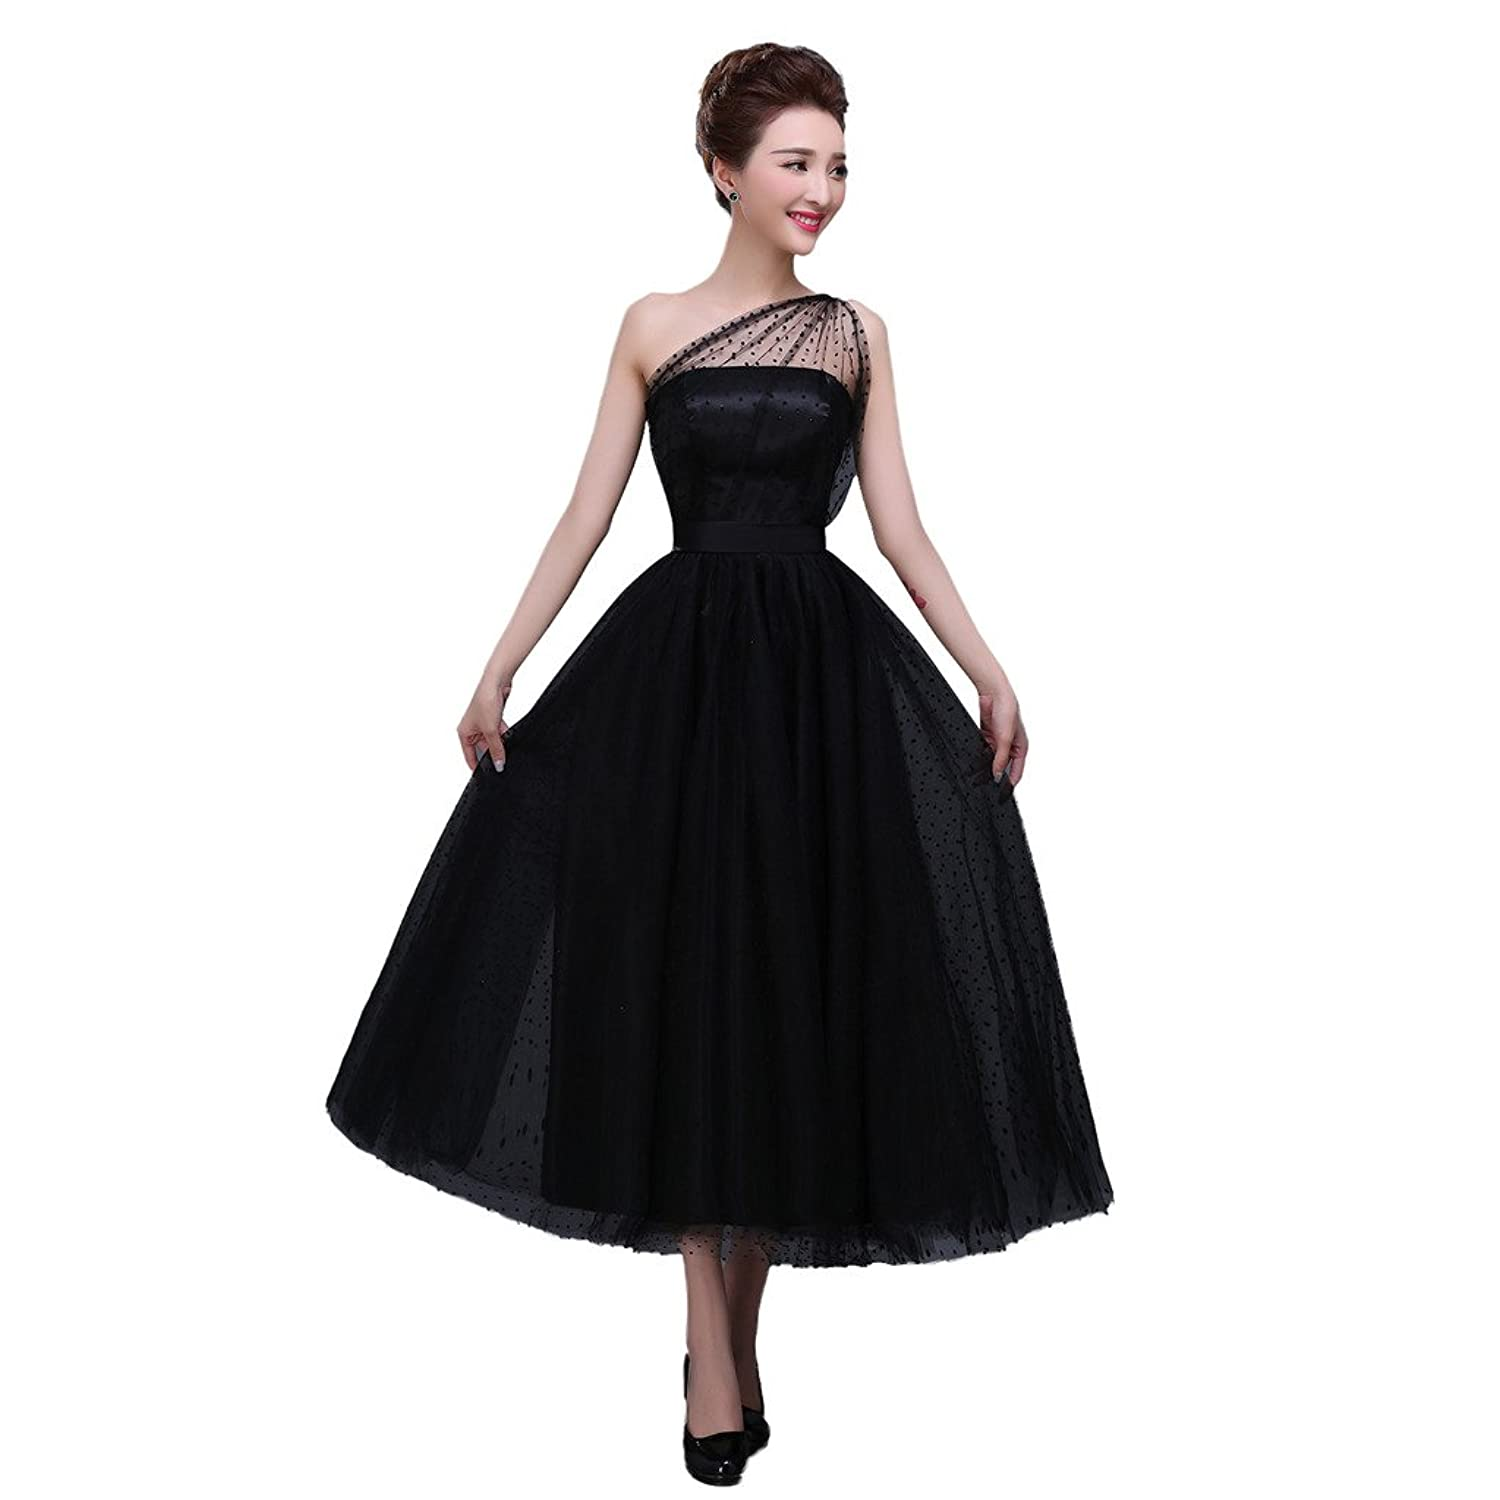 Vimans? Girl's Elegant Short One Shoulder Black Dresses for Evening Prom